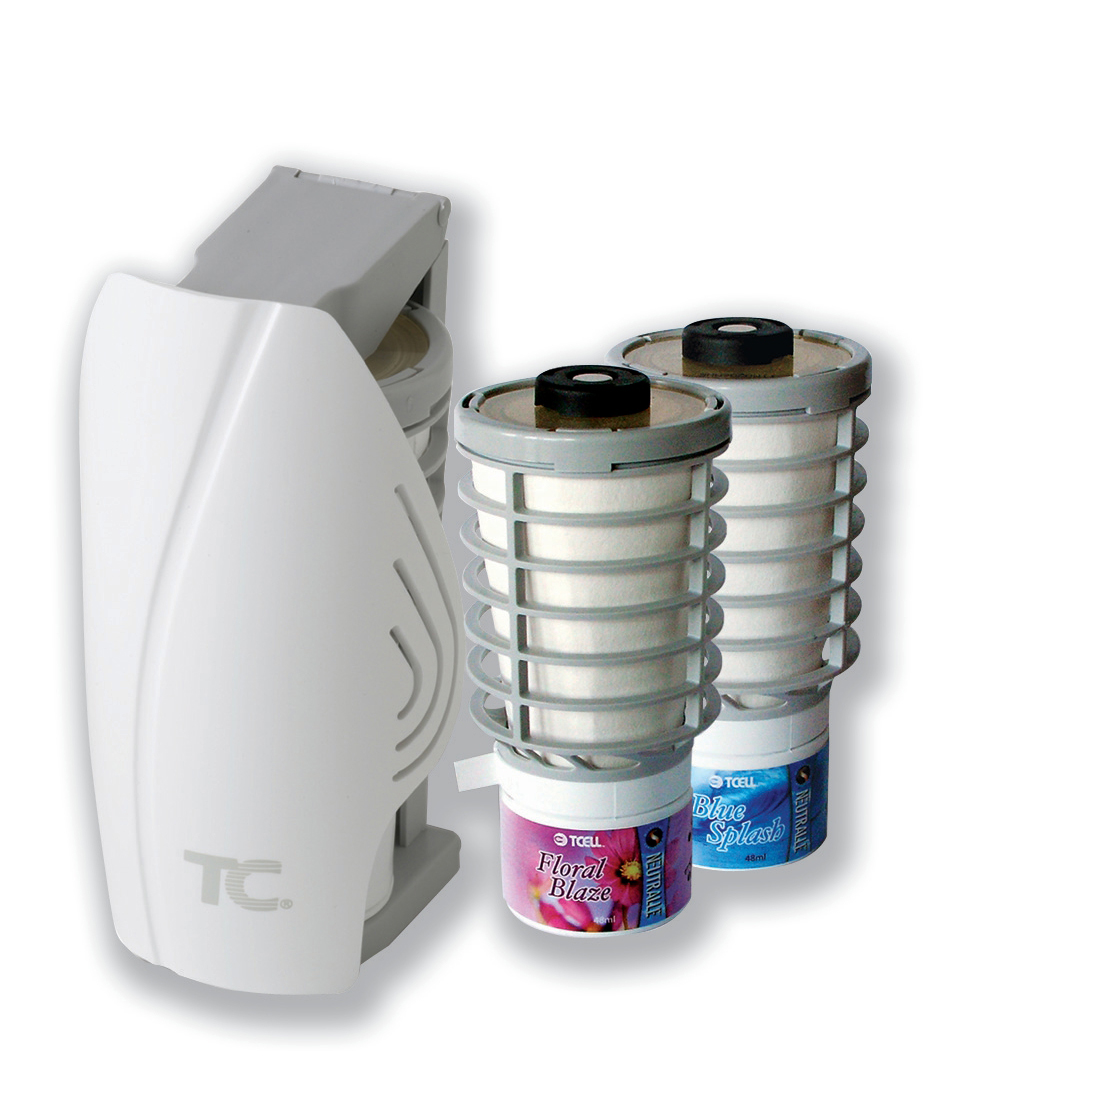 Tcell Starter Kit Pure Fragrance and Odour Neutraliser for 60 Days plus 2 Refills Ref 402557E